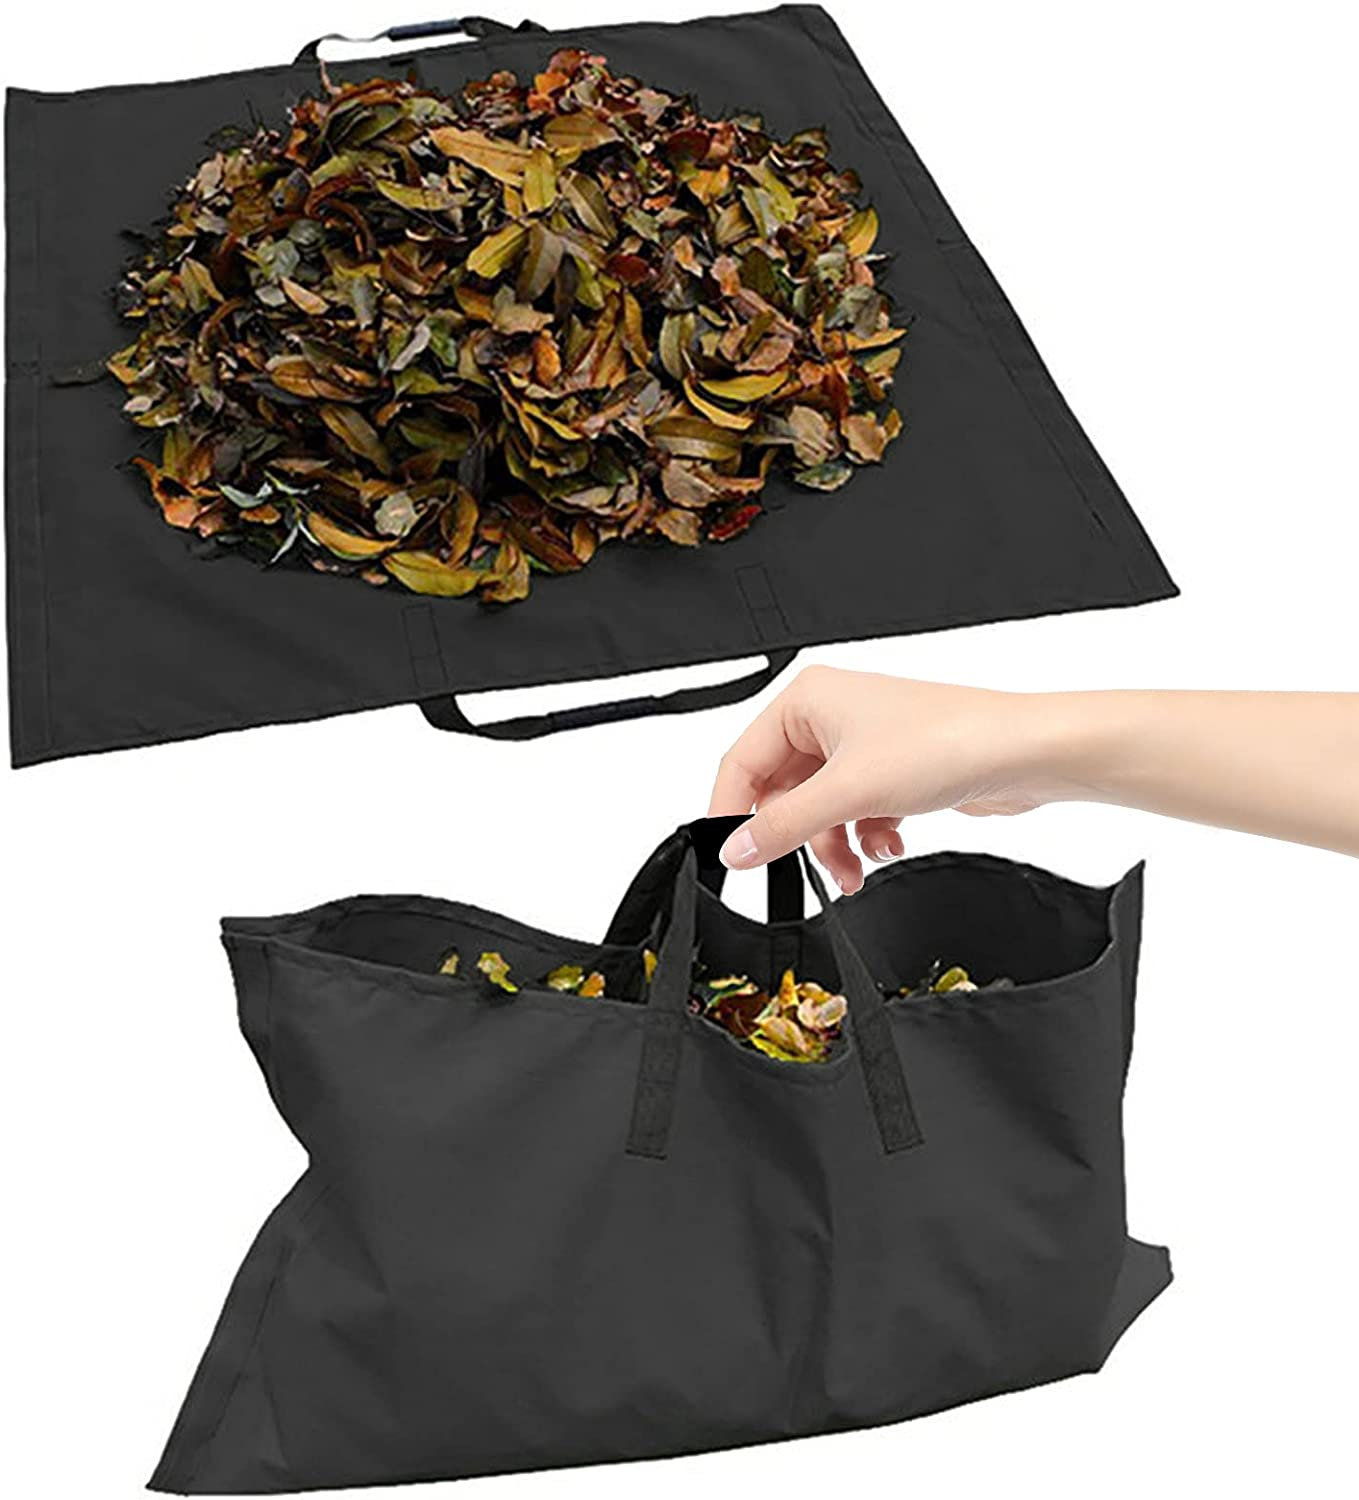 Leaf Bag for At the price Collecting Leaves Reusable Heavy Duty Gardening wholesale Ba